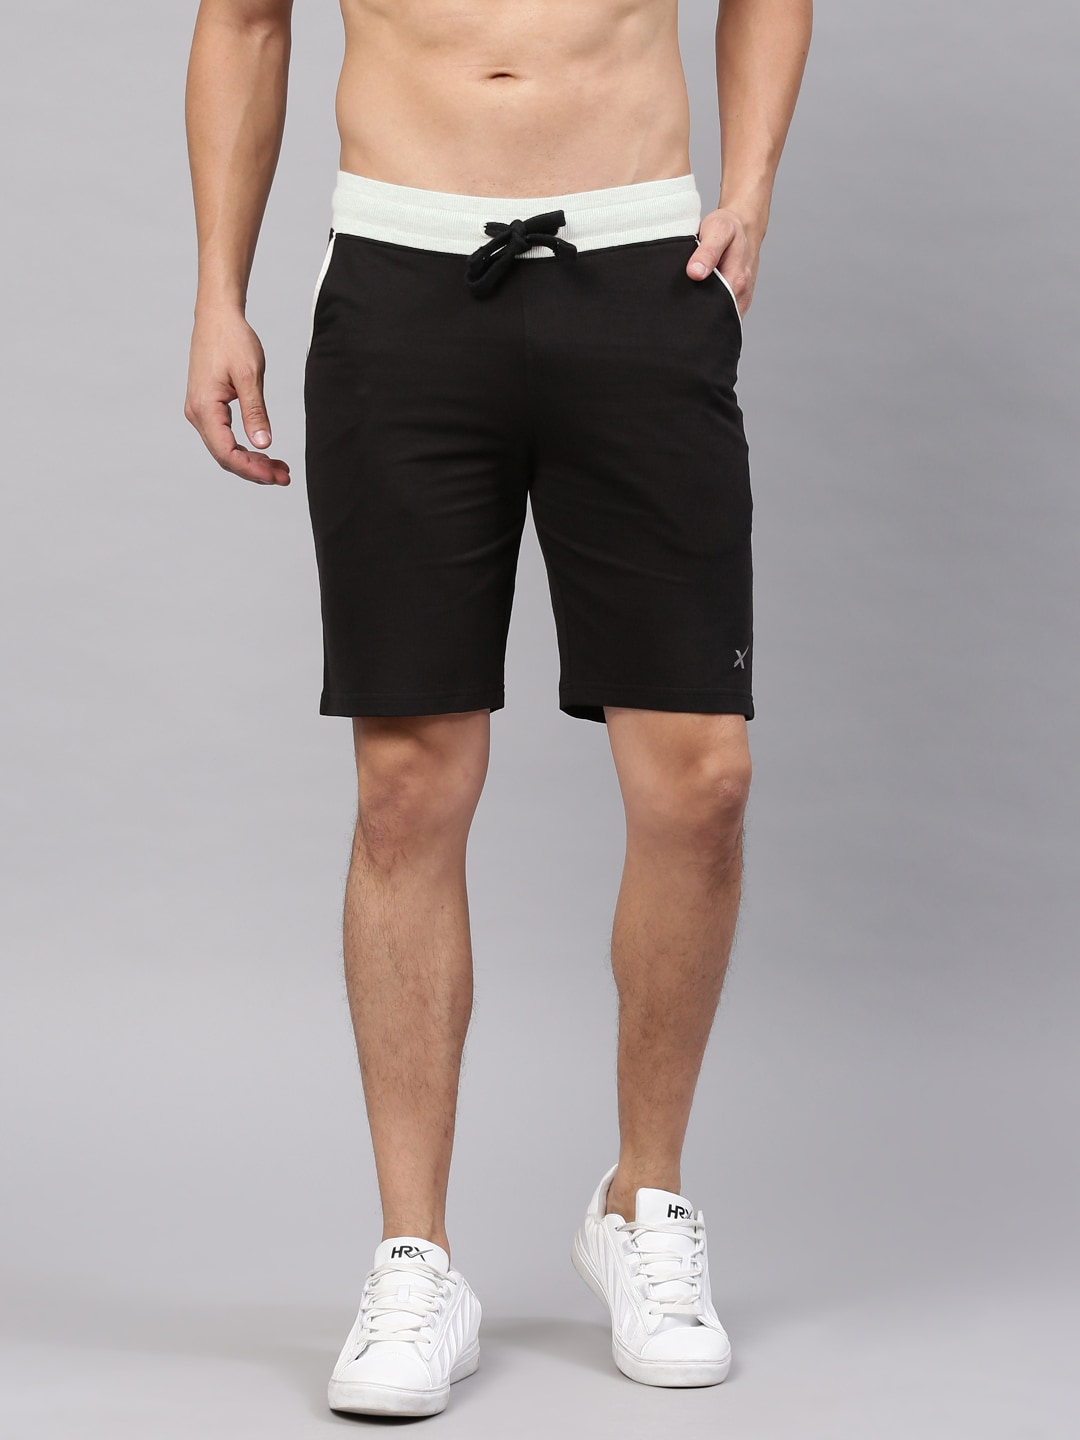 Hrx By Hrithik Roshan By Hrithik Roshan Sports Shorts - Buy Hrx By Hrithik  Roshan By Hrithik Roshan Sports Shorts online in India be74d0b0b1